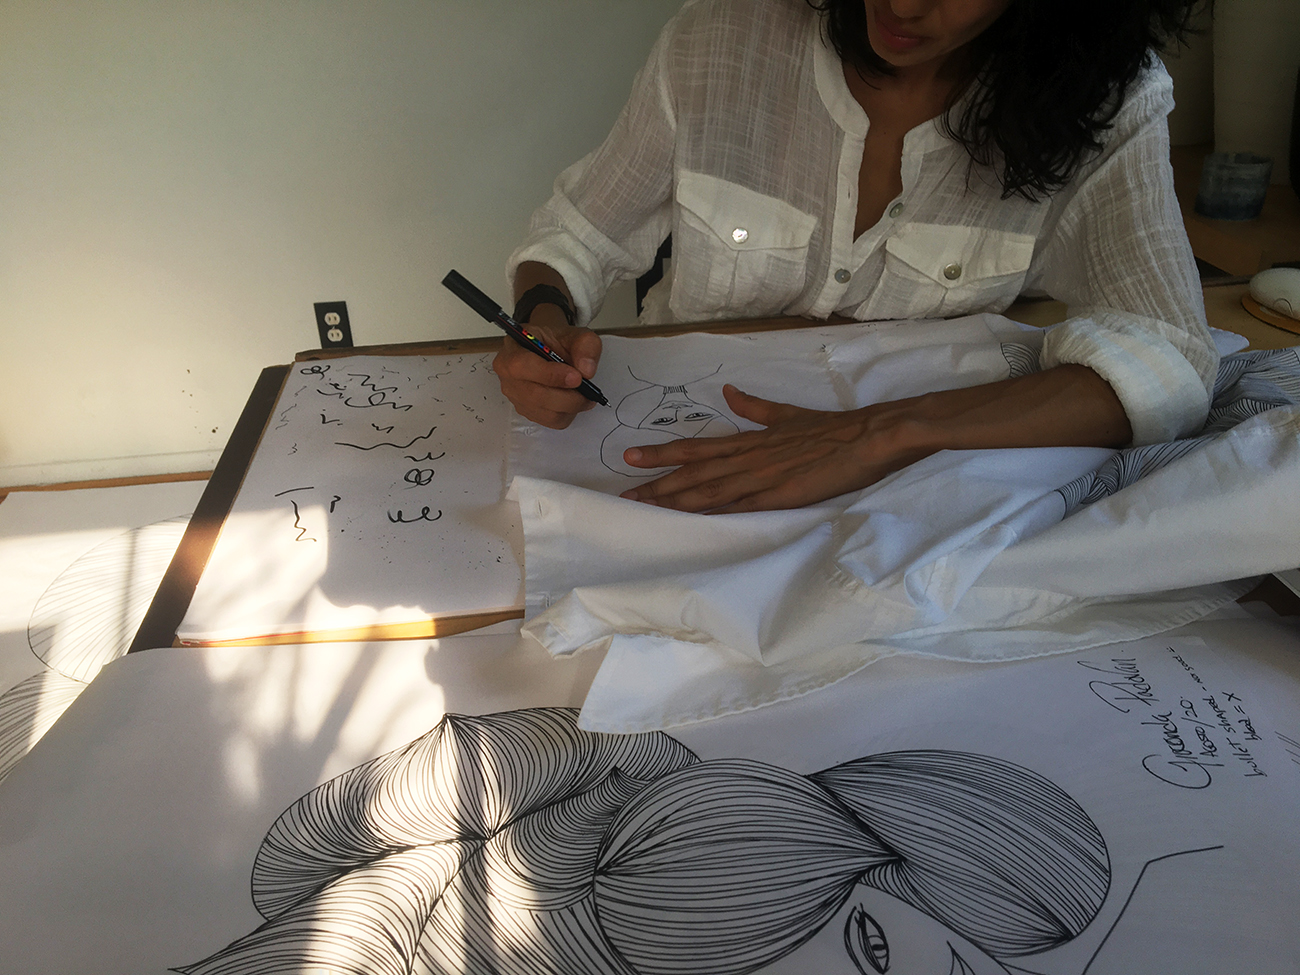 Drawing on fabric